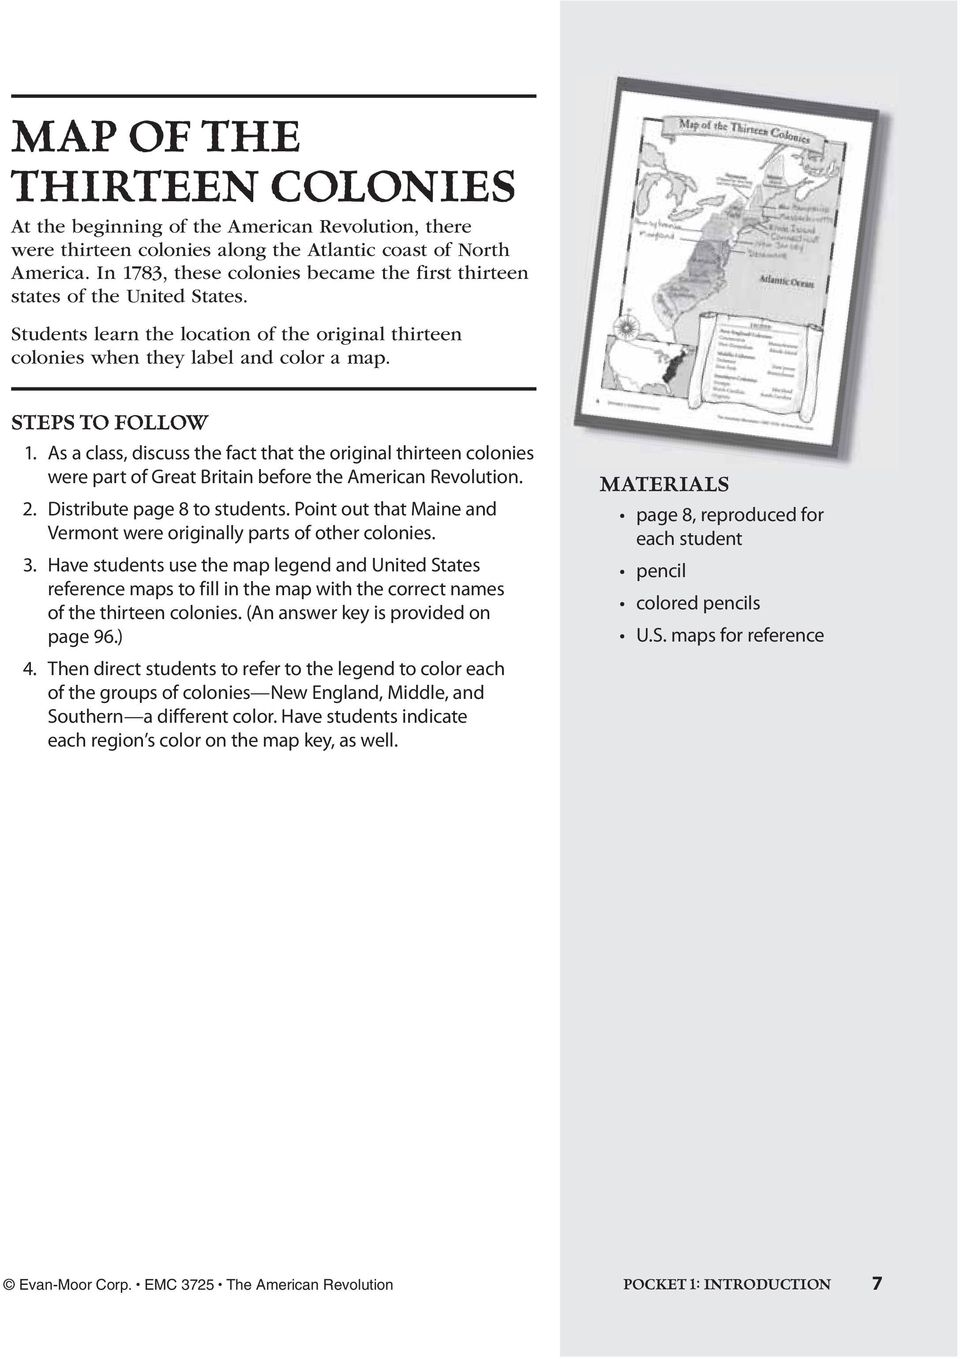 As a class, discuss the fact that the original thirteen colonies were part of Great Britain before the American Revolution. 2. Distribute page 8 to students.